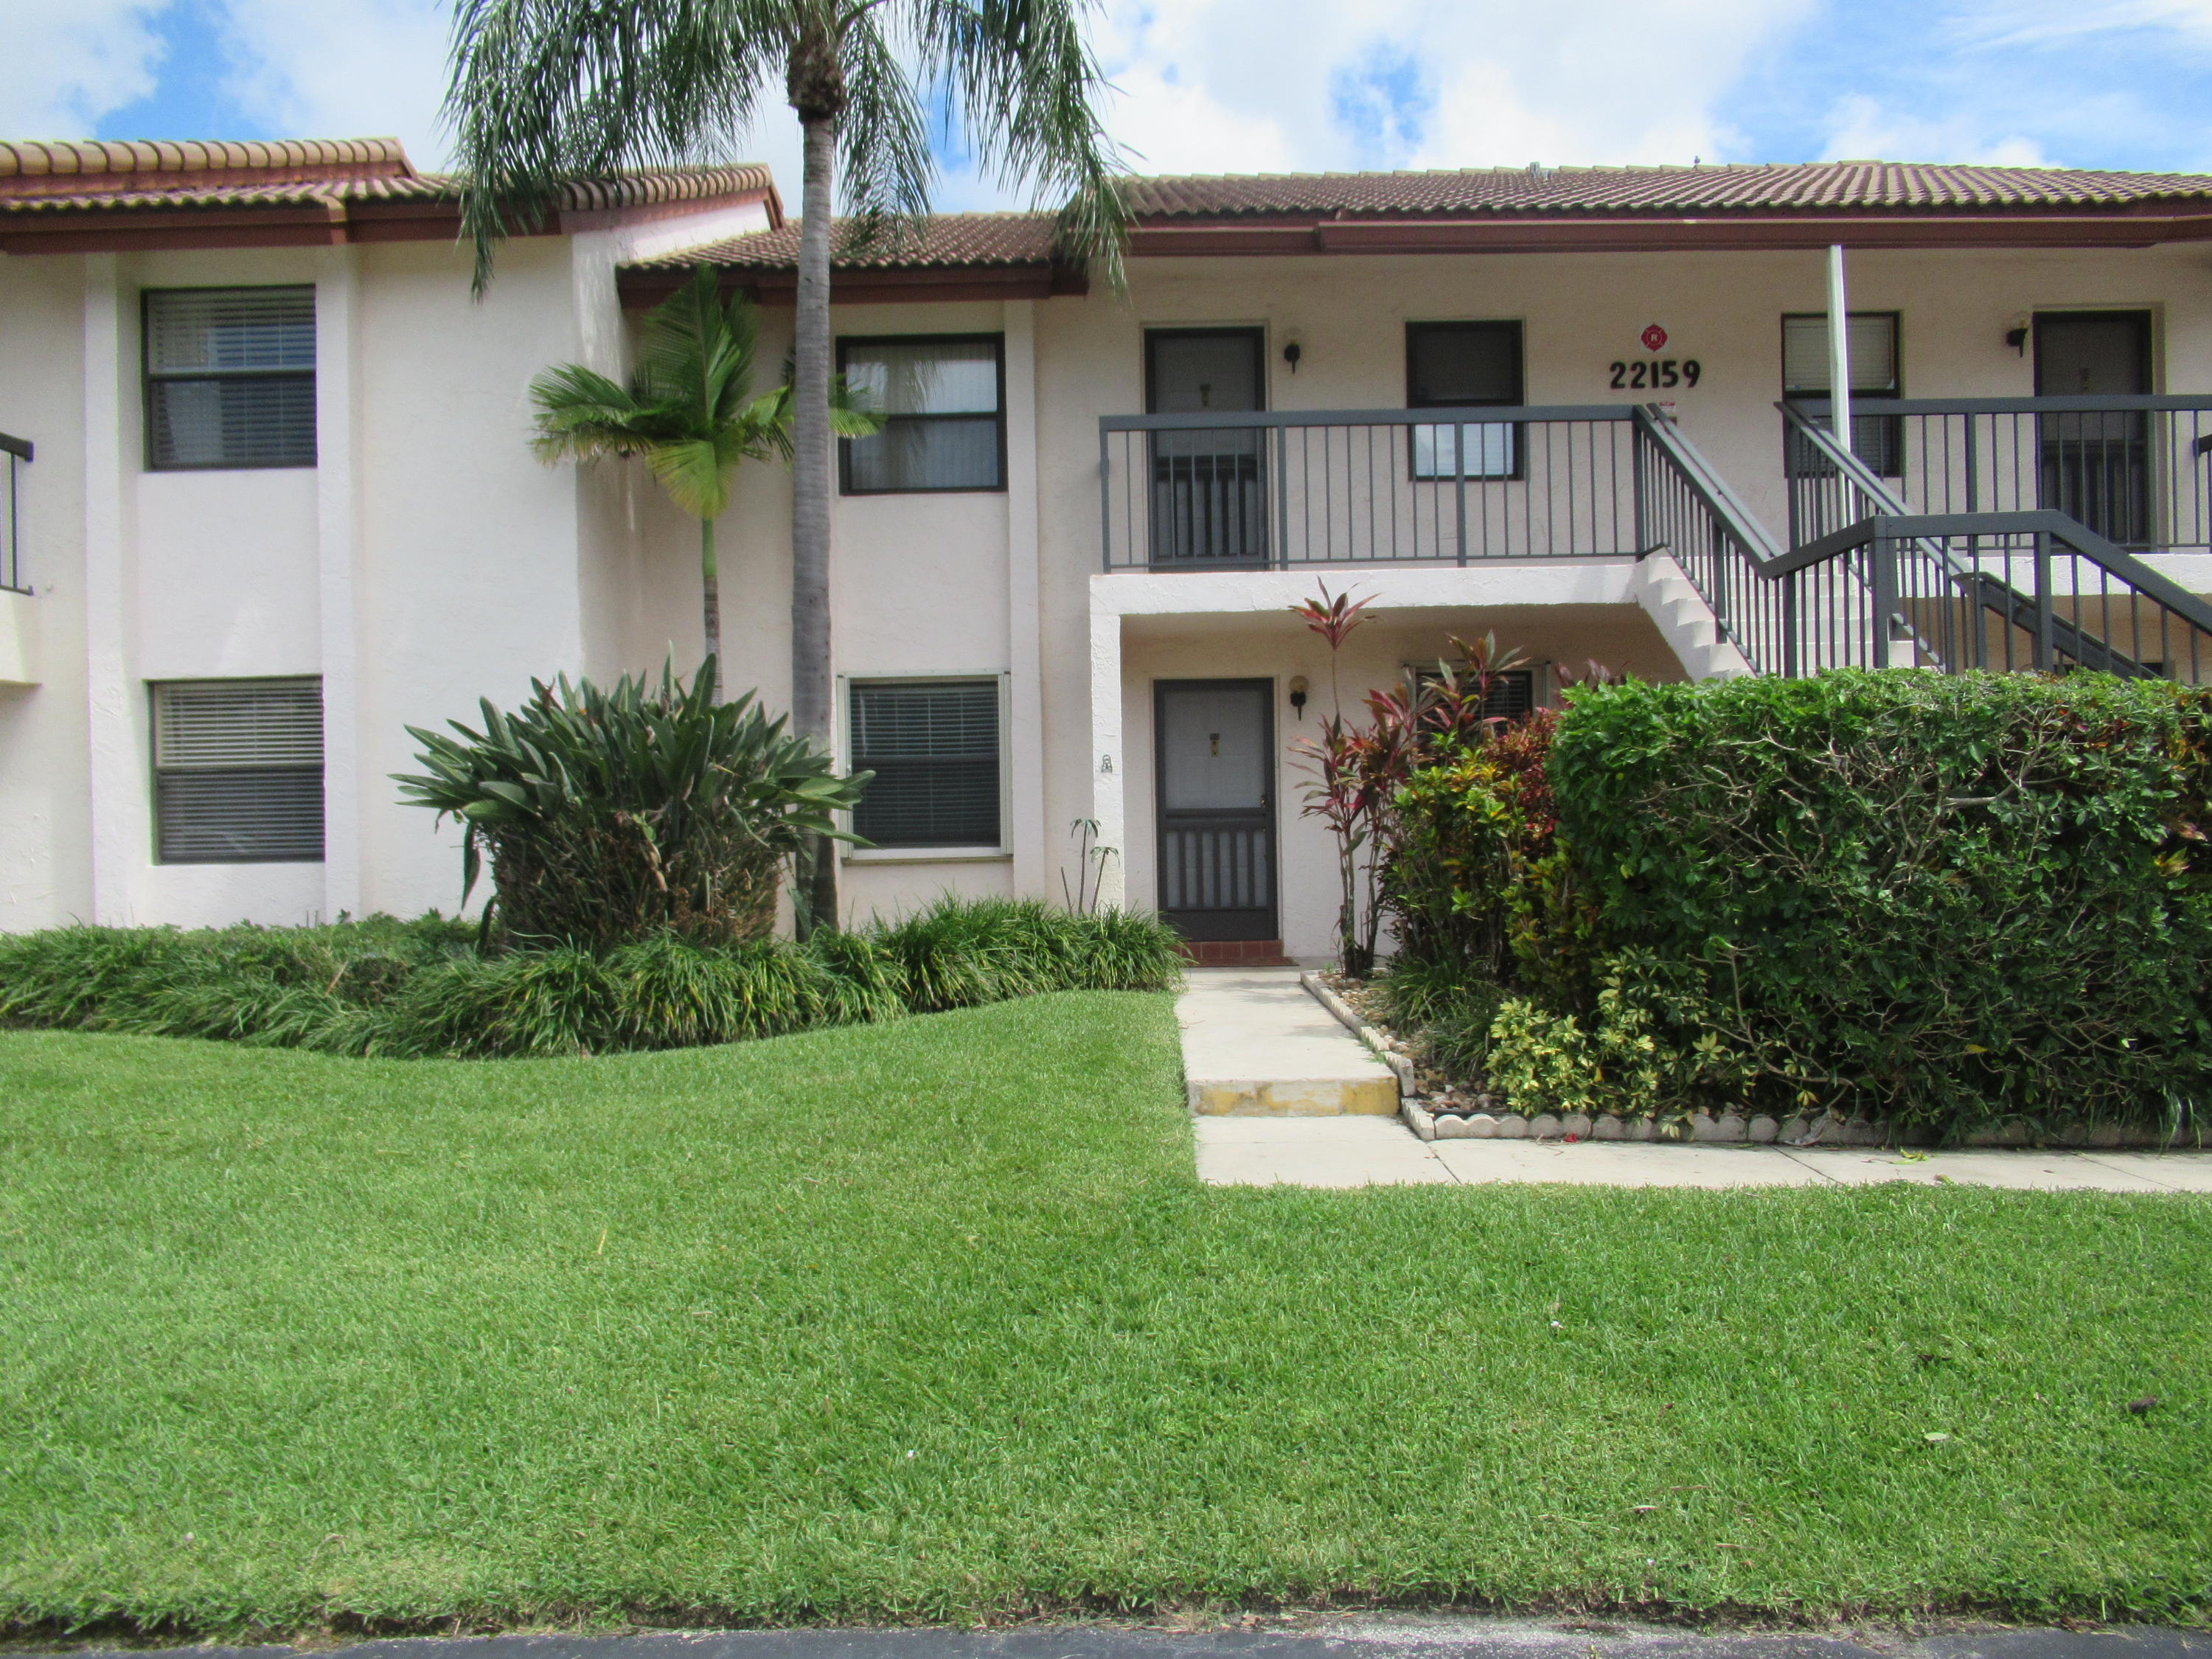 22159 Palms Way #103 Boca Raton, FL 33433